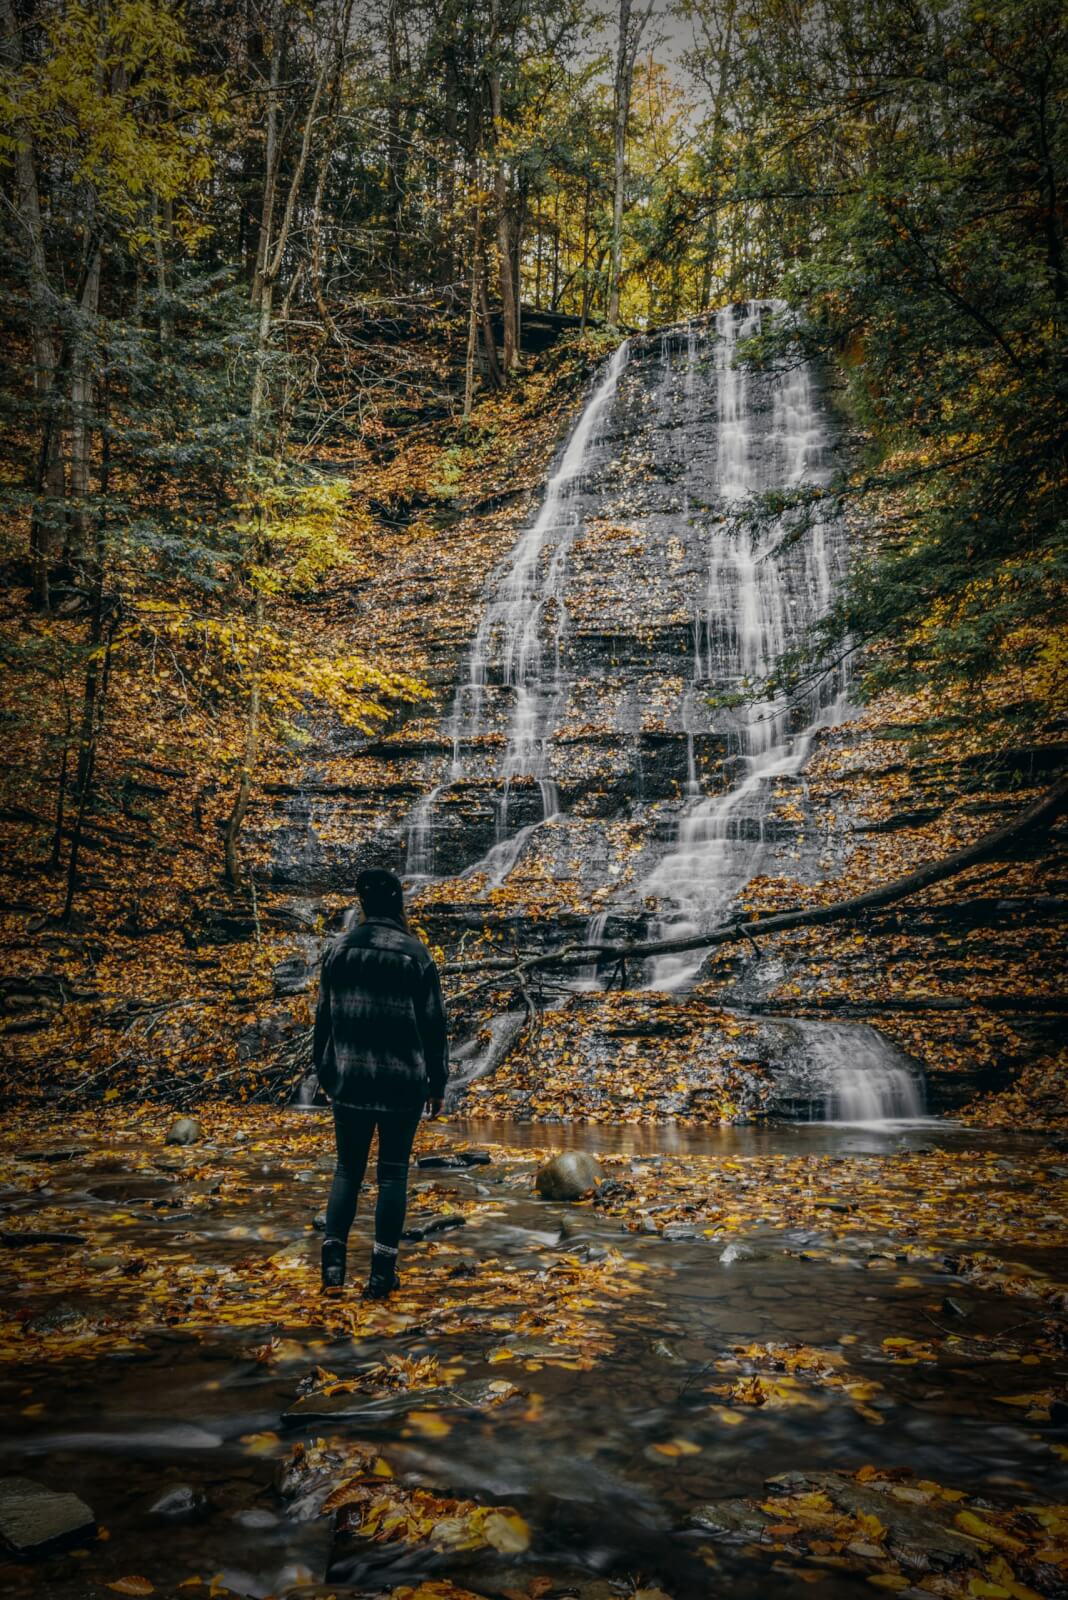 first waterfall at grimes glen in naples new york in the fall